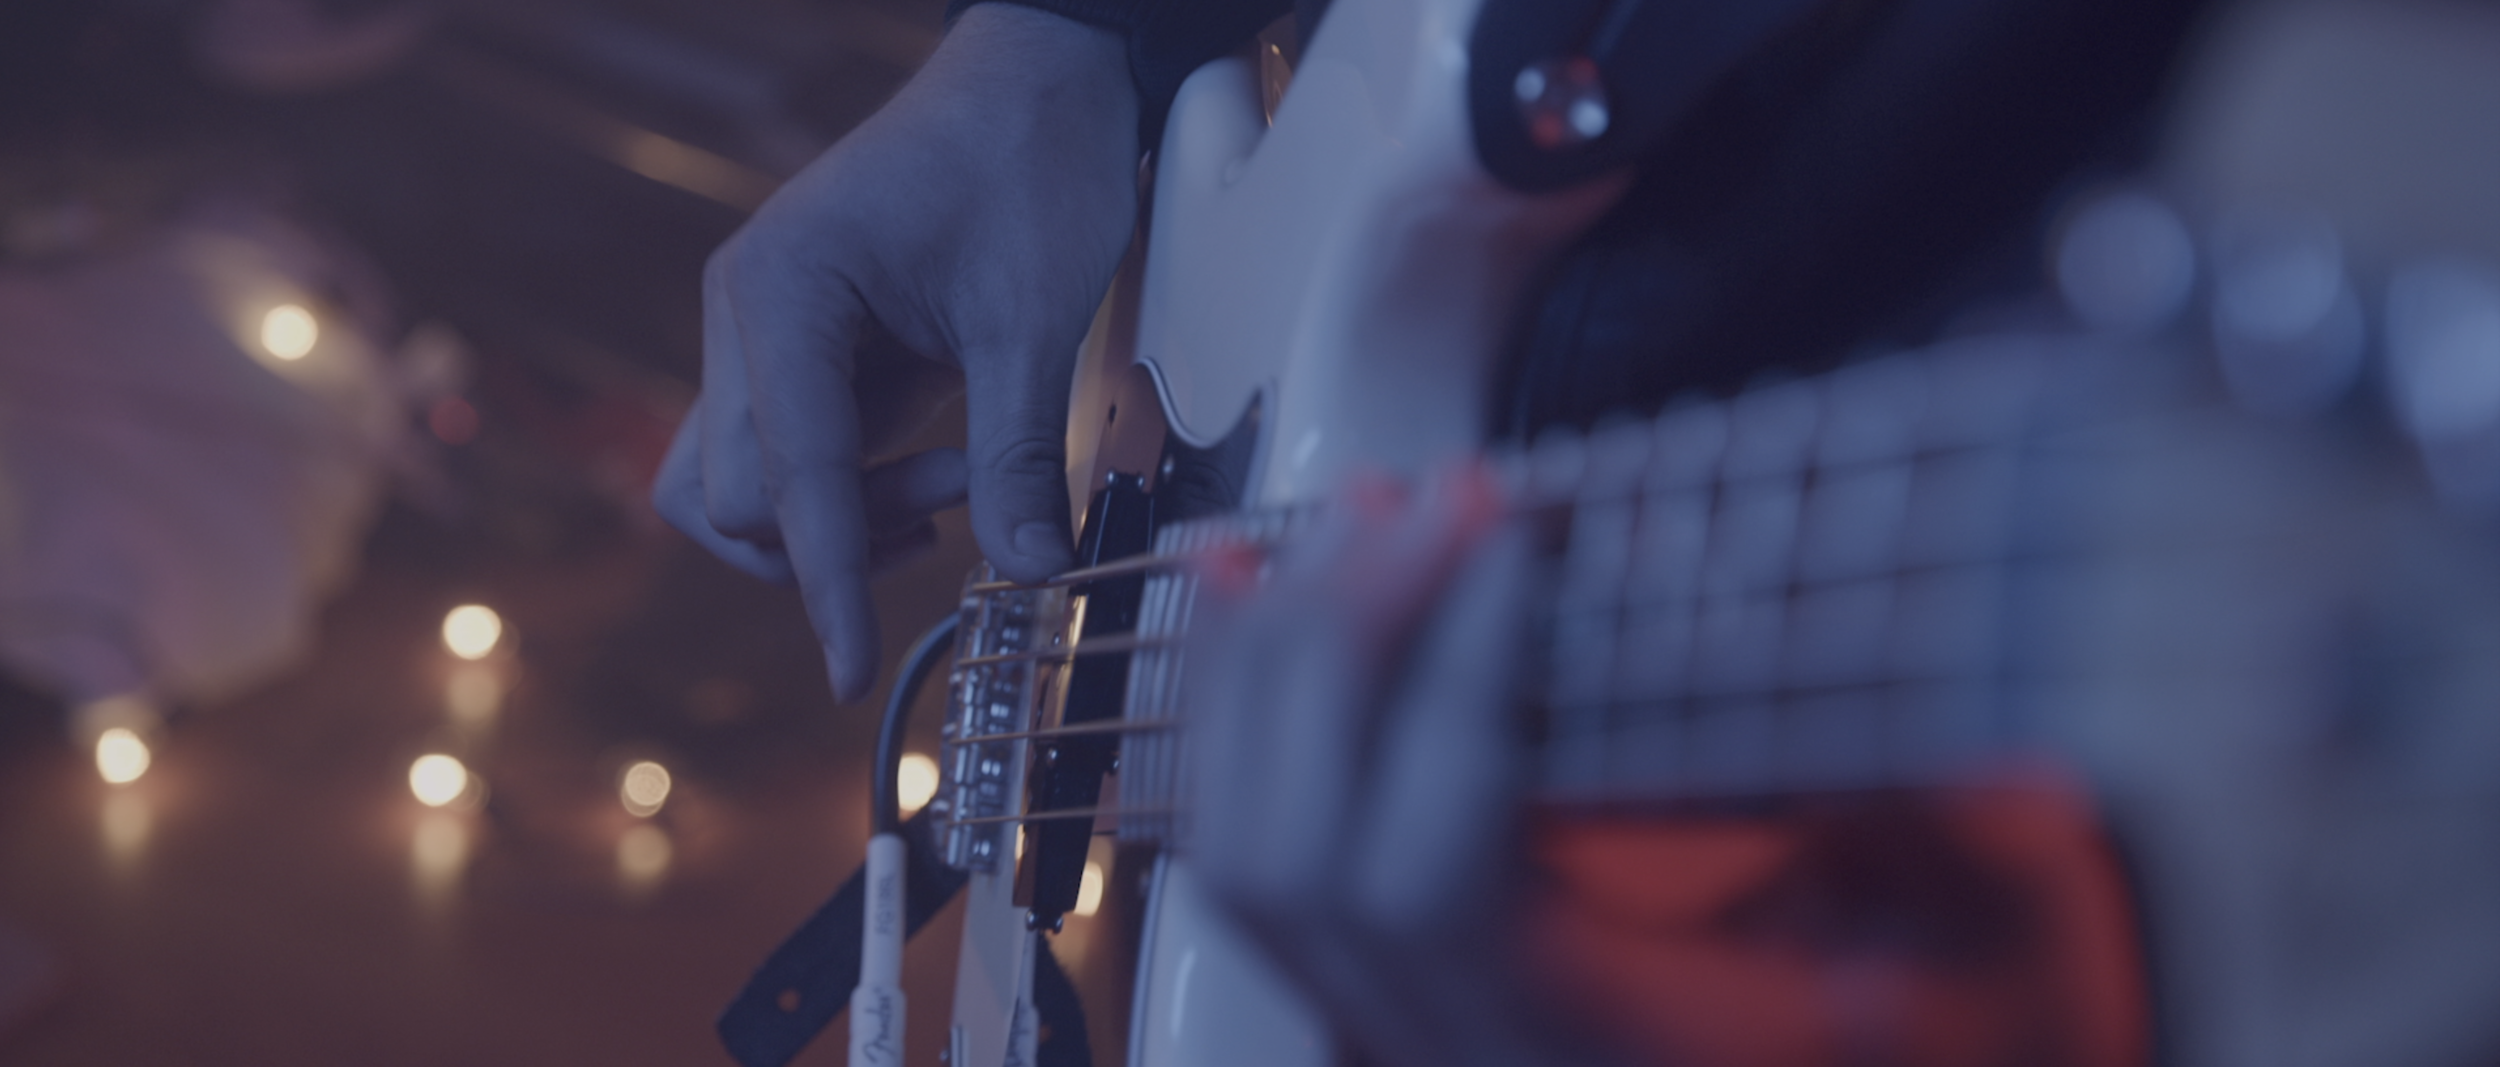 bass guitar 2.png